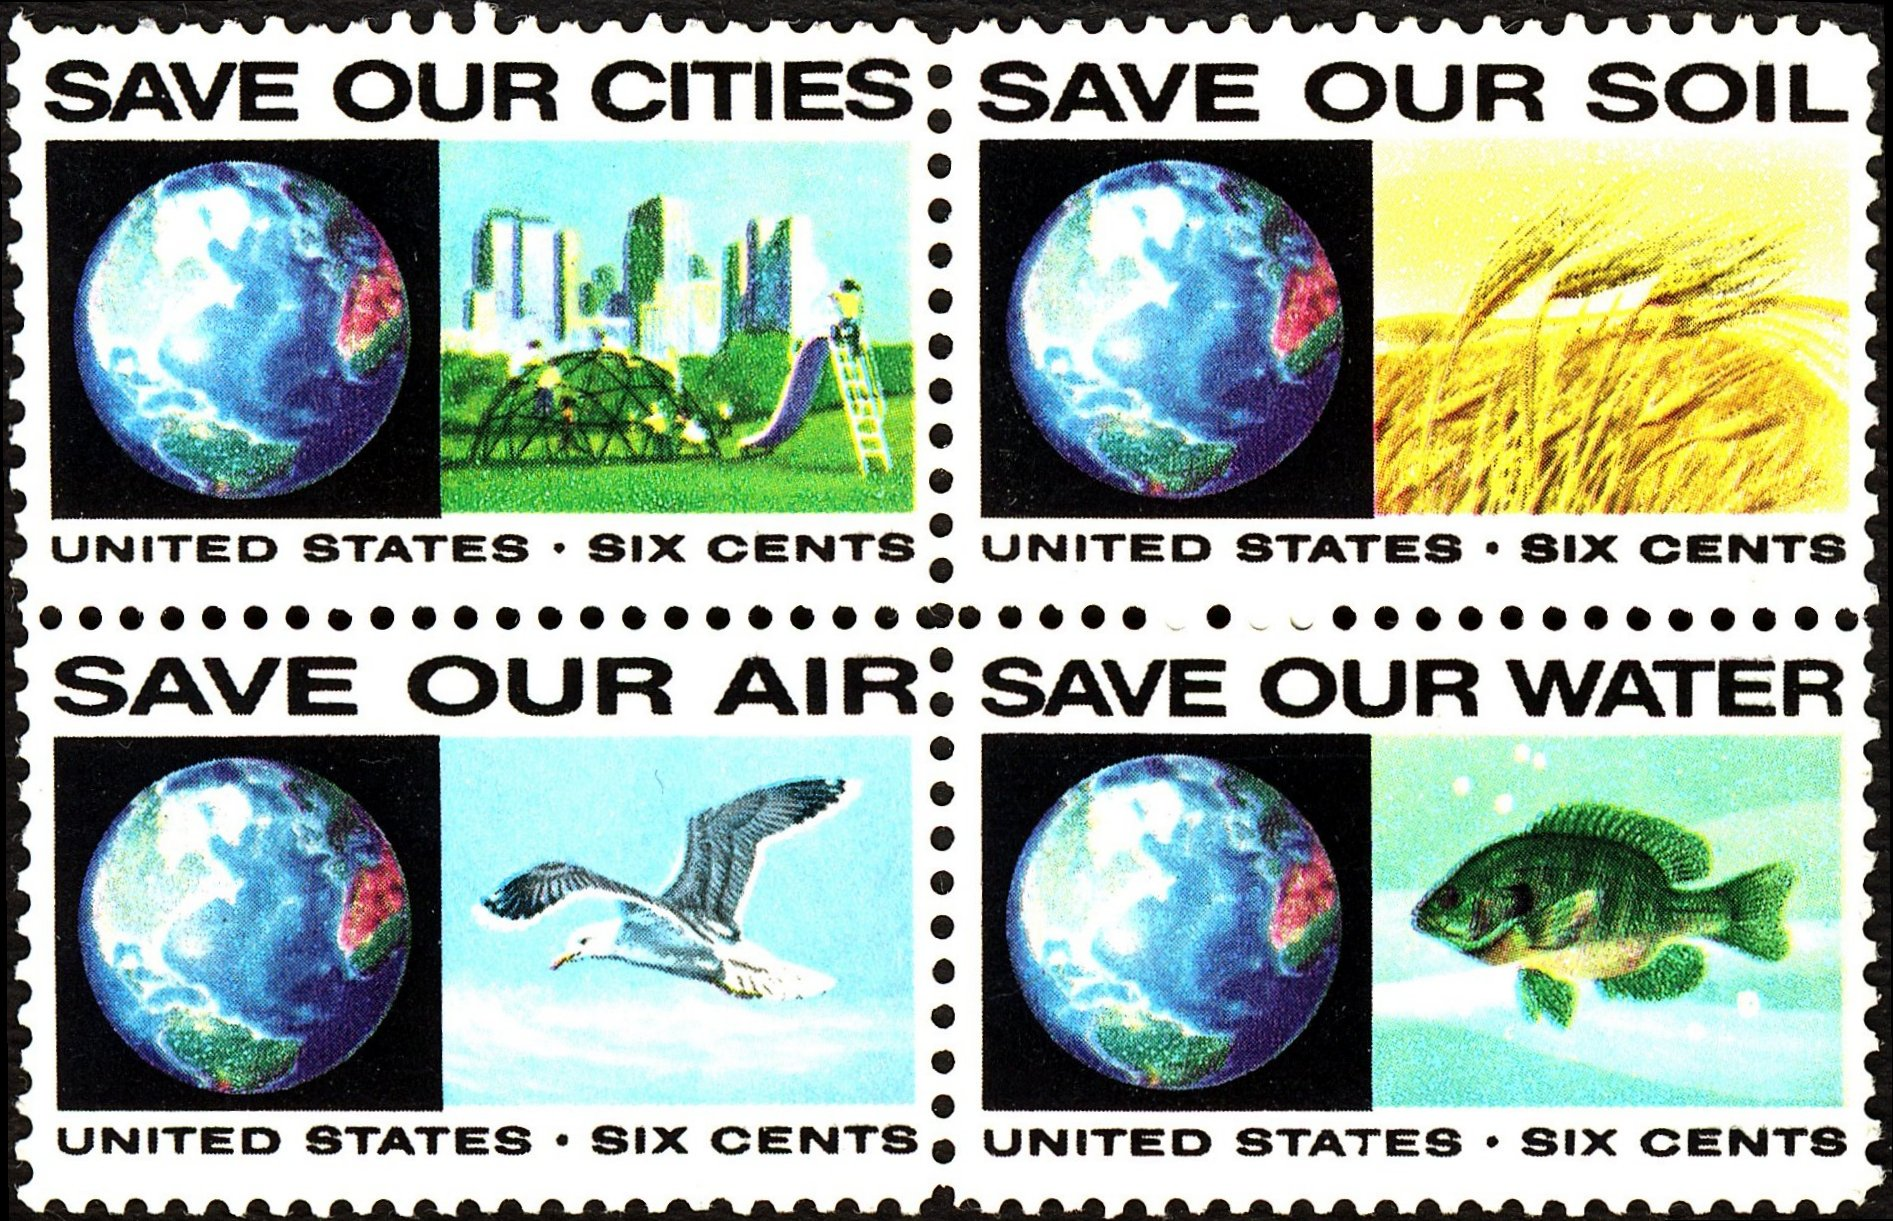 013 Usstamp Save Our Essay Example Water Awful Wikipedia Life In Tamil Gujarati Full